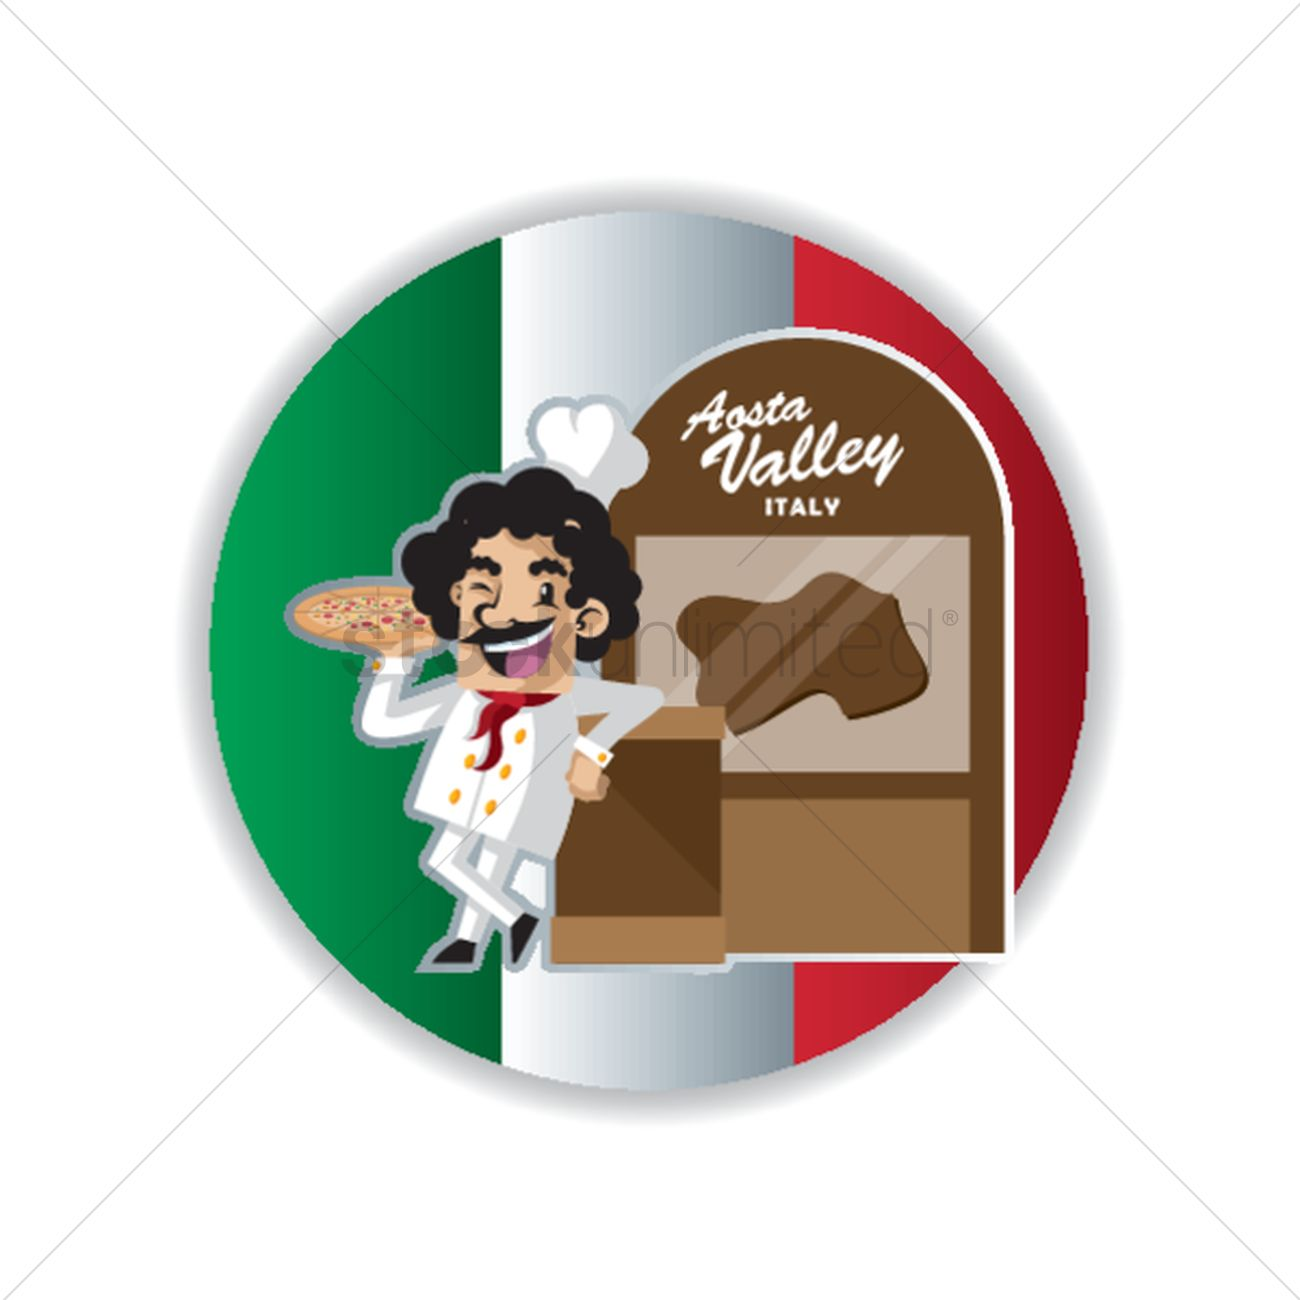 Aosta valley map with chef Vector Image.